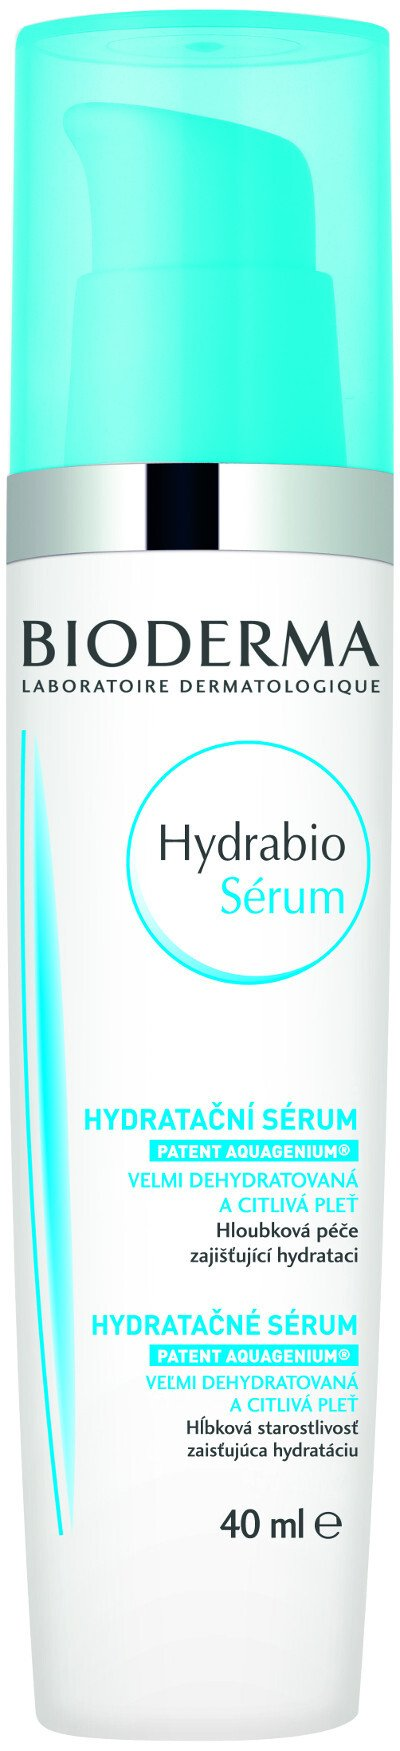 hydrabio-serum-40ml_r3814.jpg